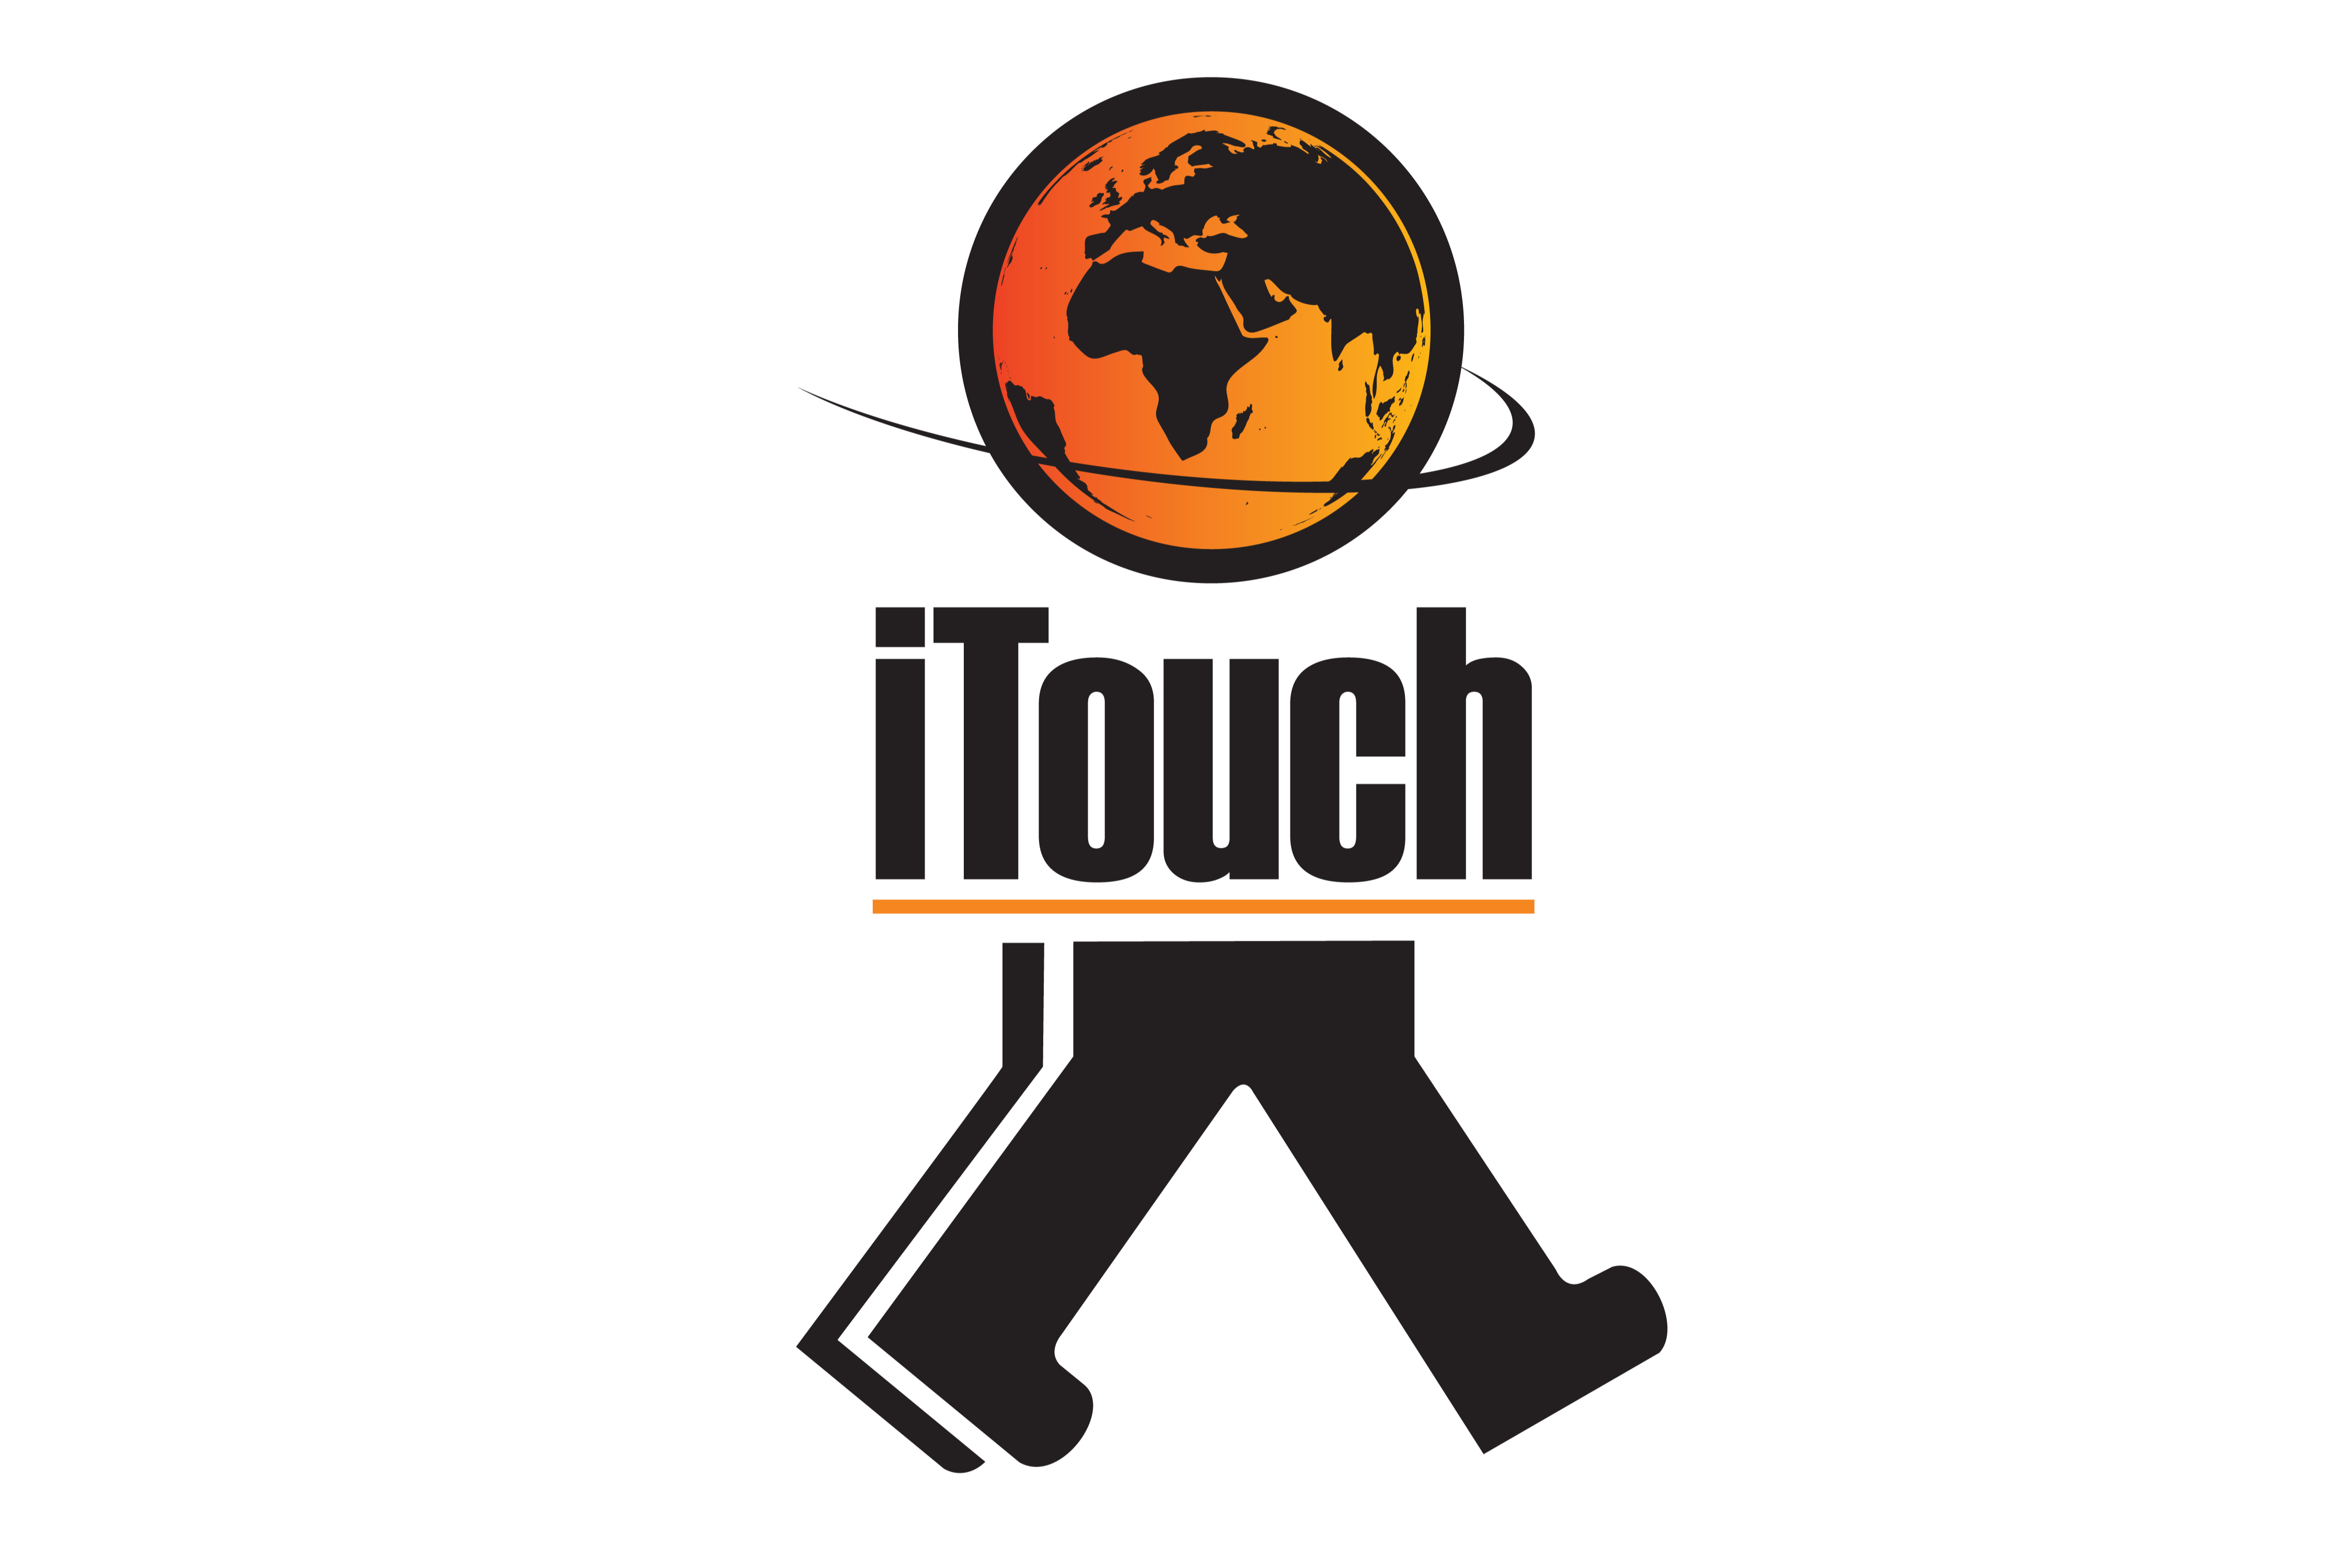 itouch-logo